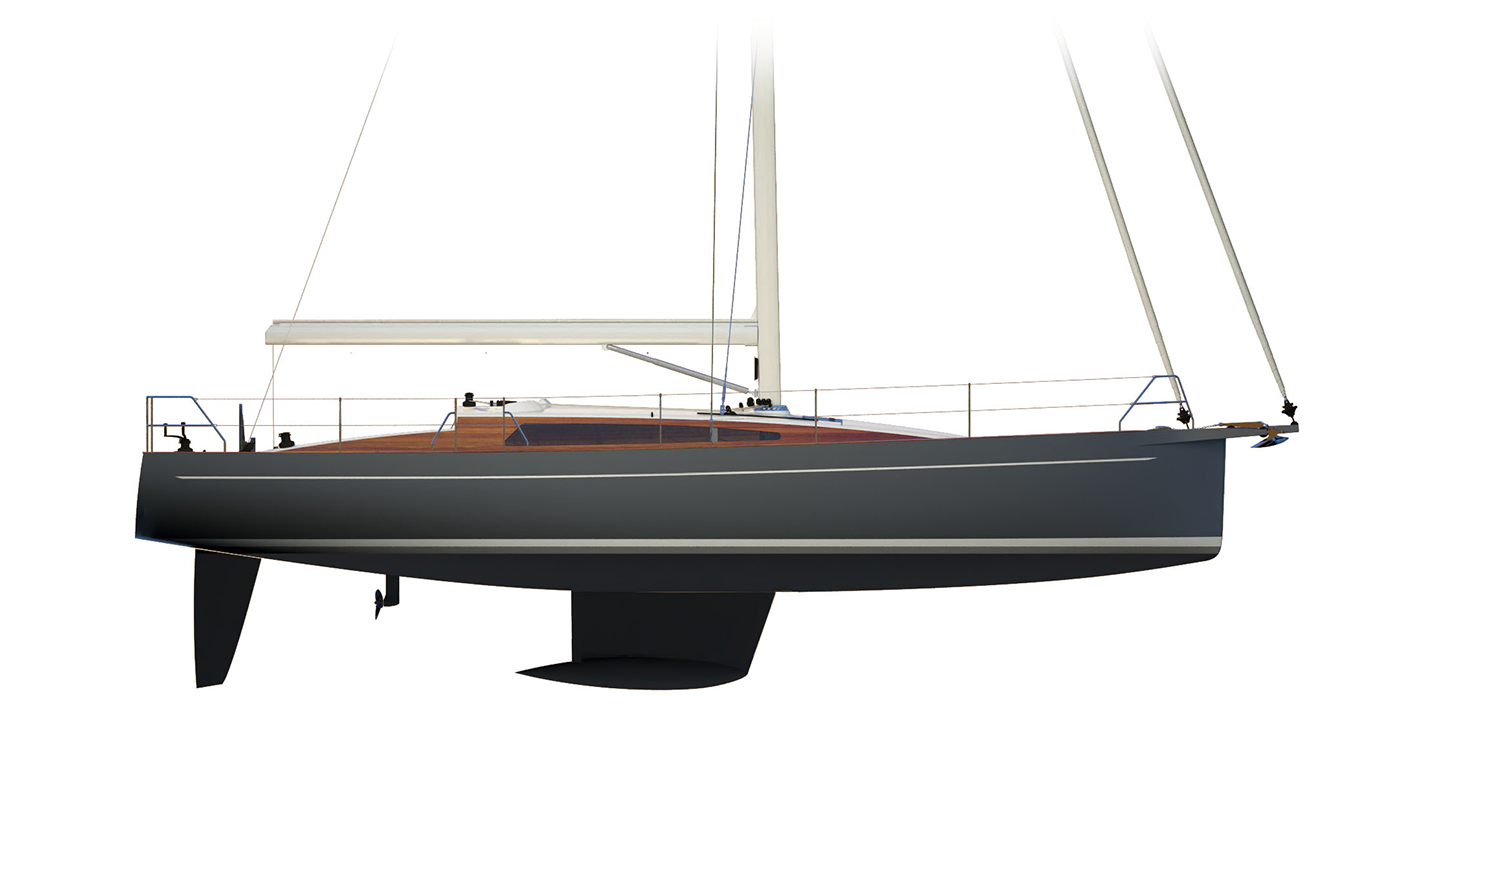 LM46 Hull No. 1 profile with keel, rudder, and Saildrive